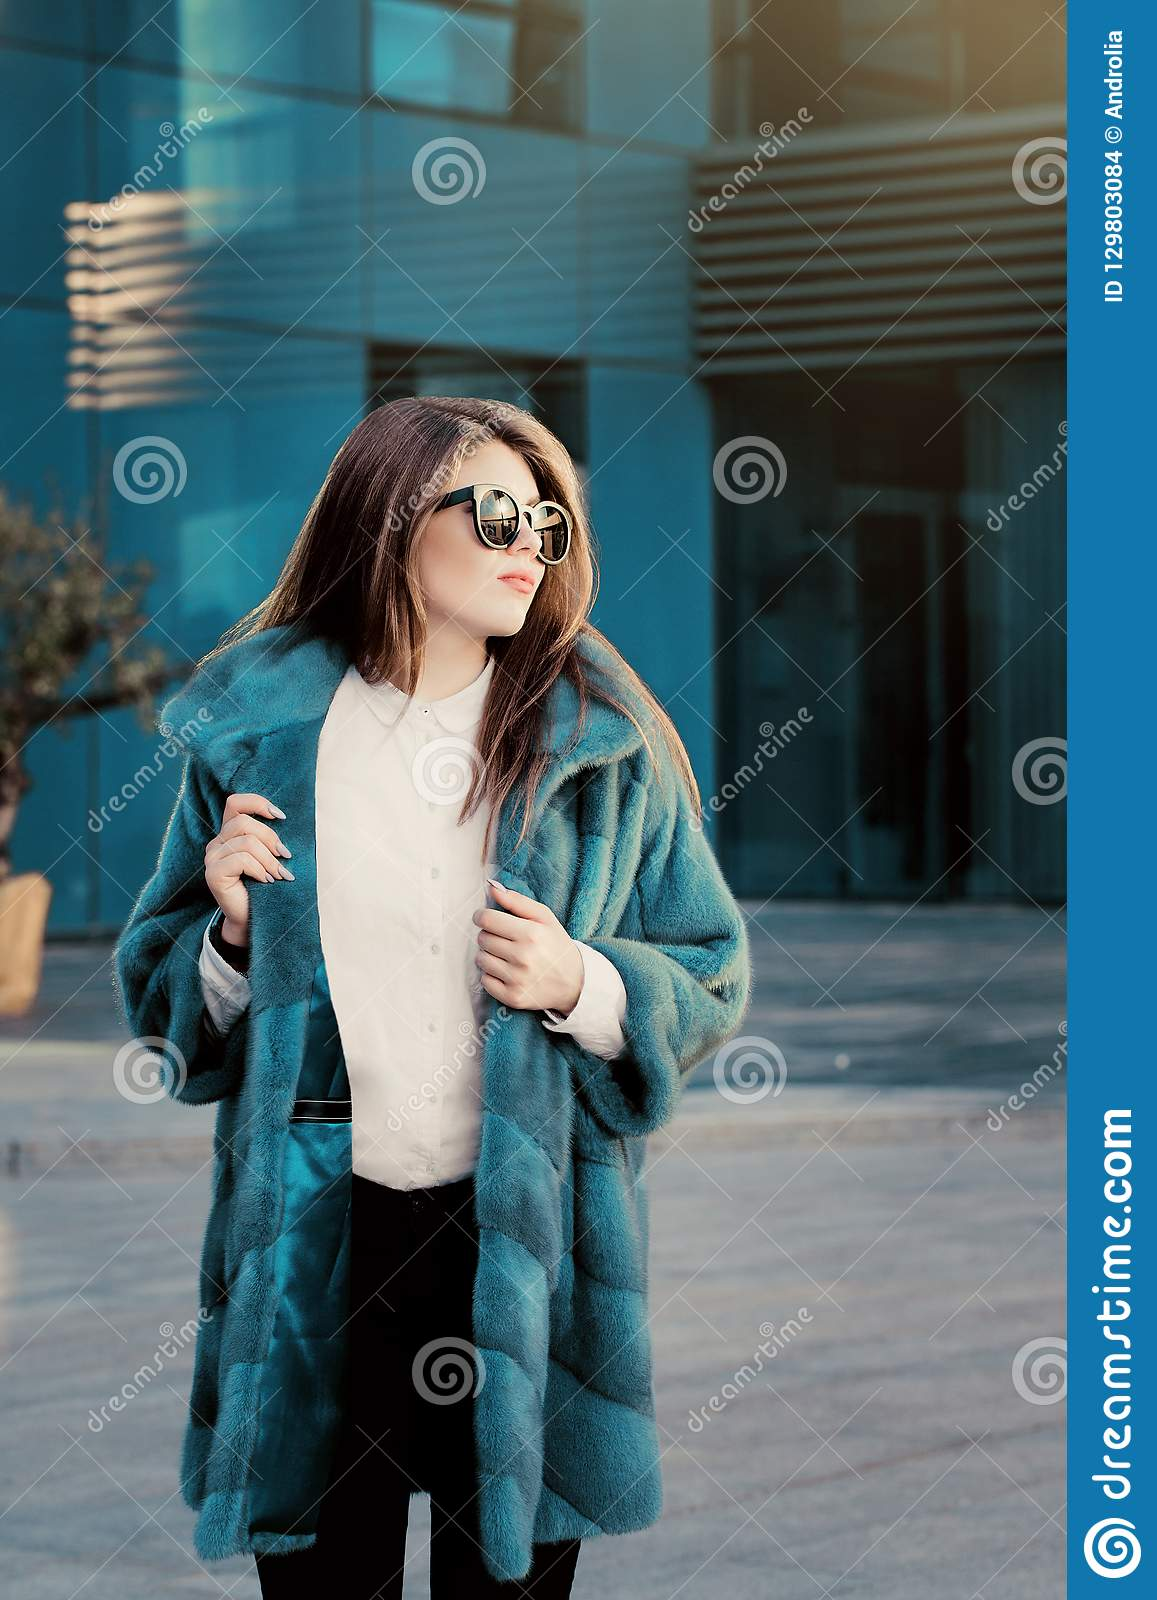 Pretty teenage girl in a bright colorful natural fur coat and sunglasses